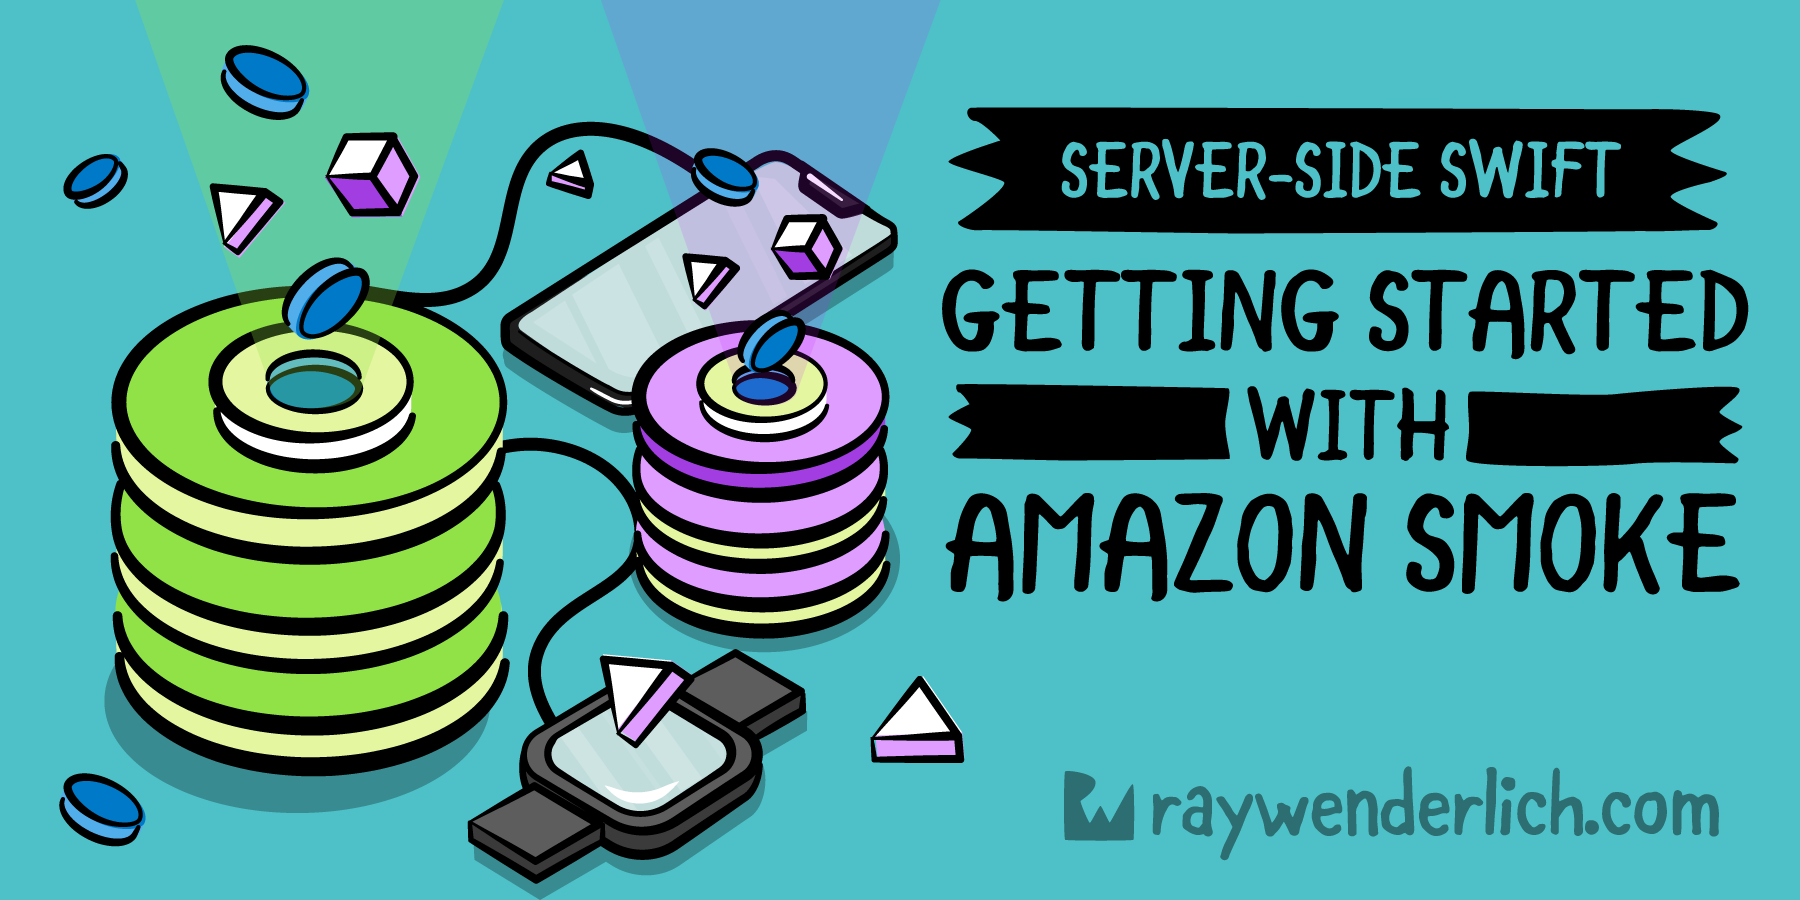 Getting Started With Server-Side Swift and Amazon Smoke [FREE] - RapidAPI